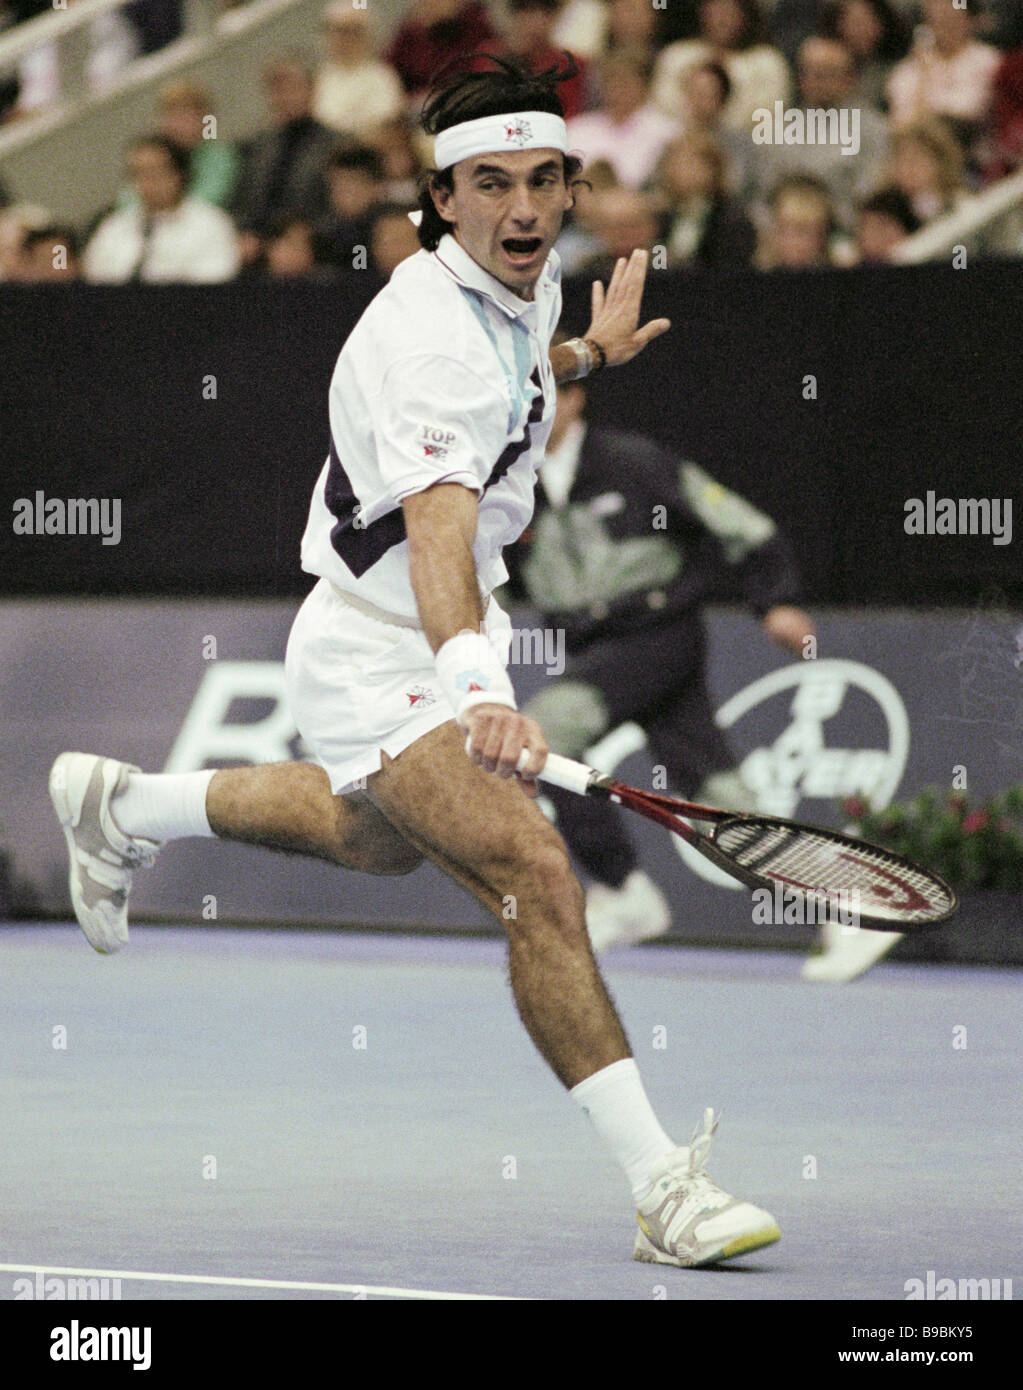 Spanish tennis player Emilio Sanchez Vicario at the First Moscow international professional tennis tournament The - Stock Image